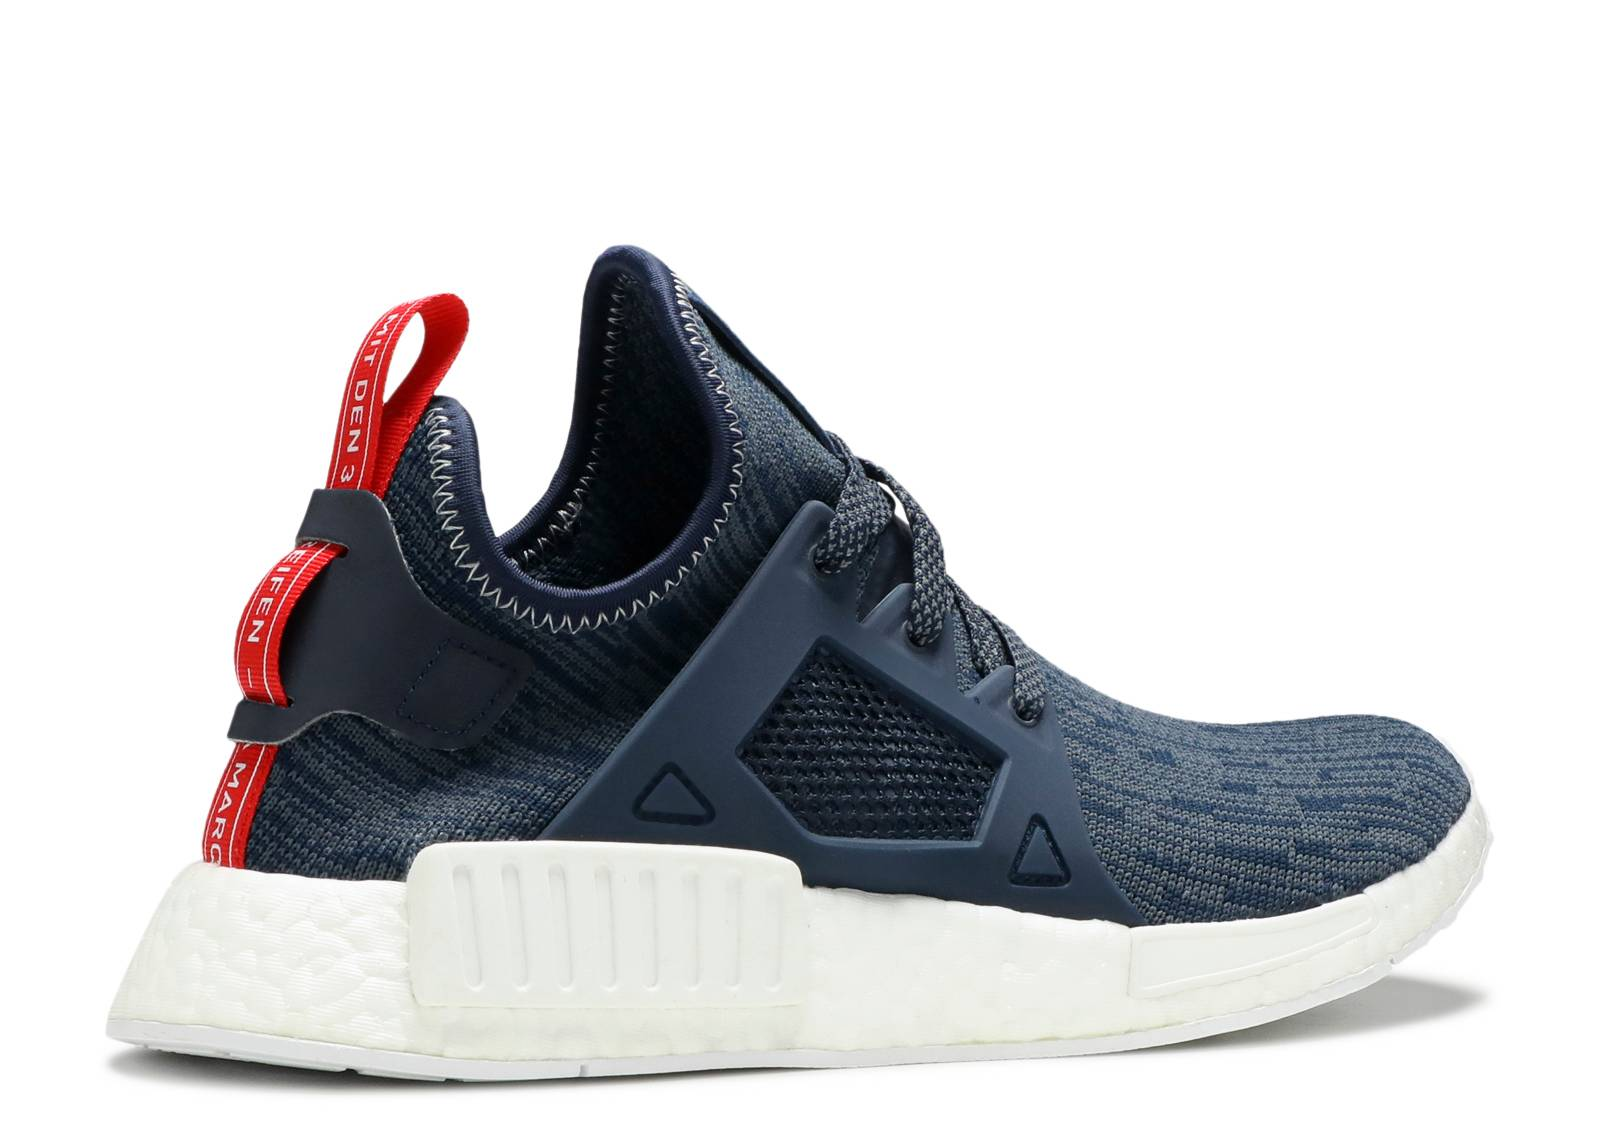 58% Off Adidas originals nmd xr1 og core black Cheap NMD Shoes